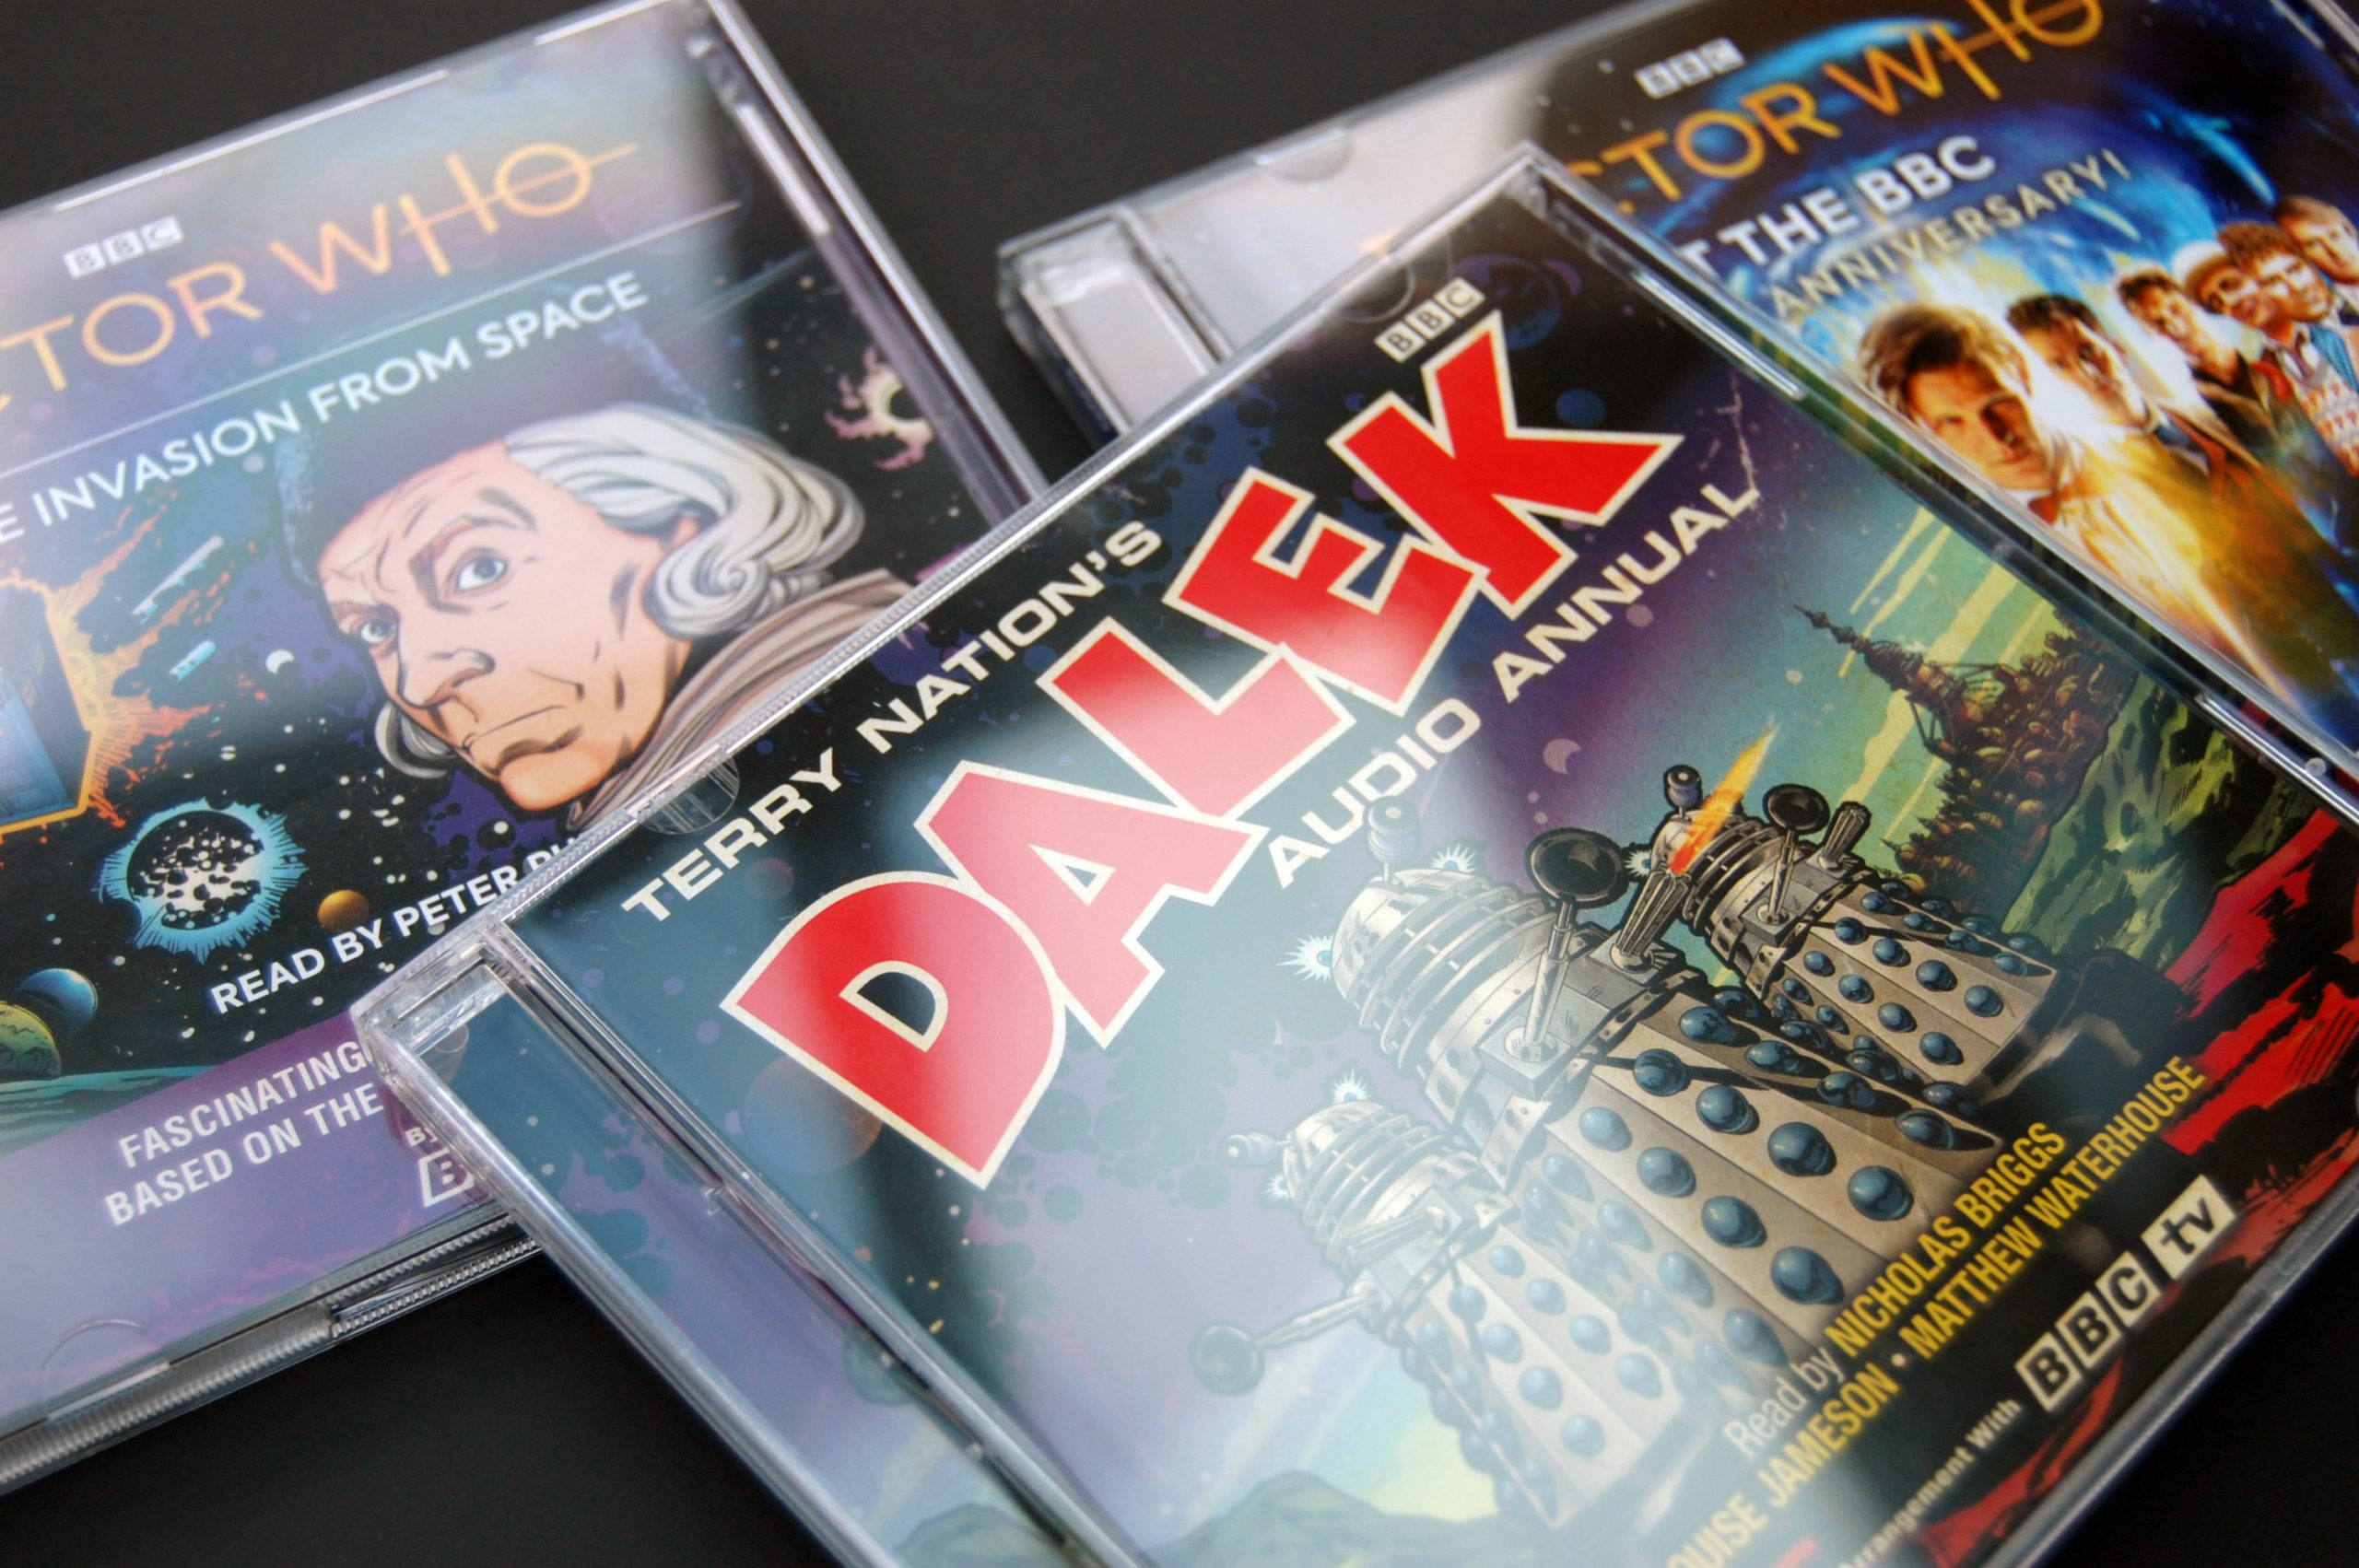 Dalek audio CD packaging